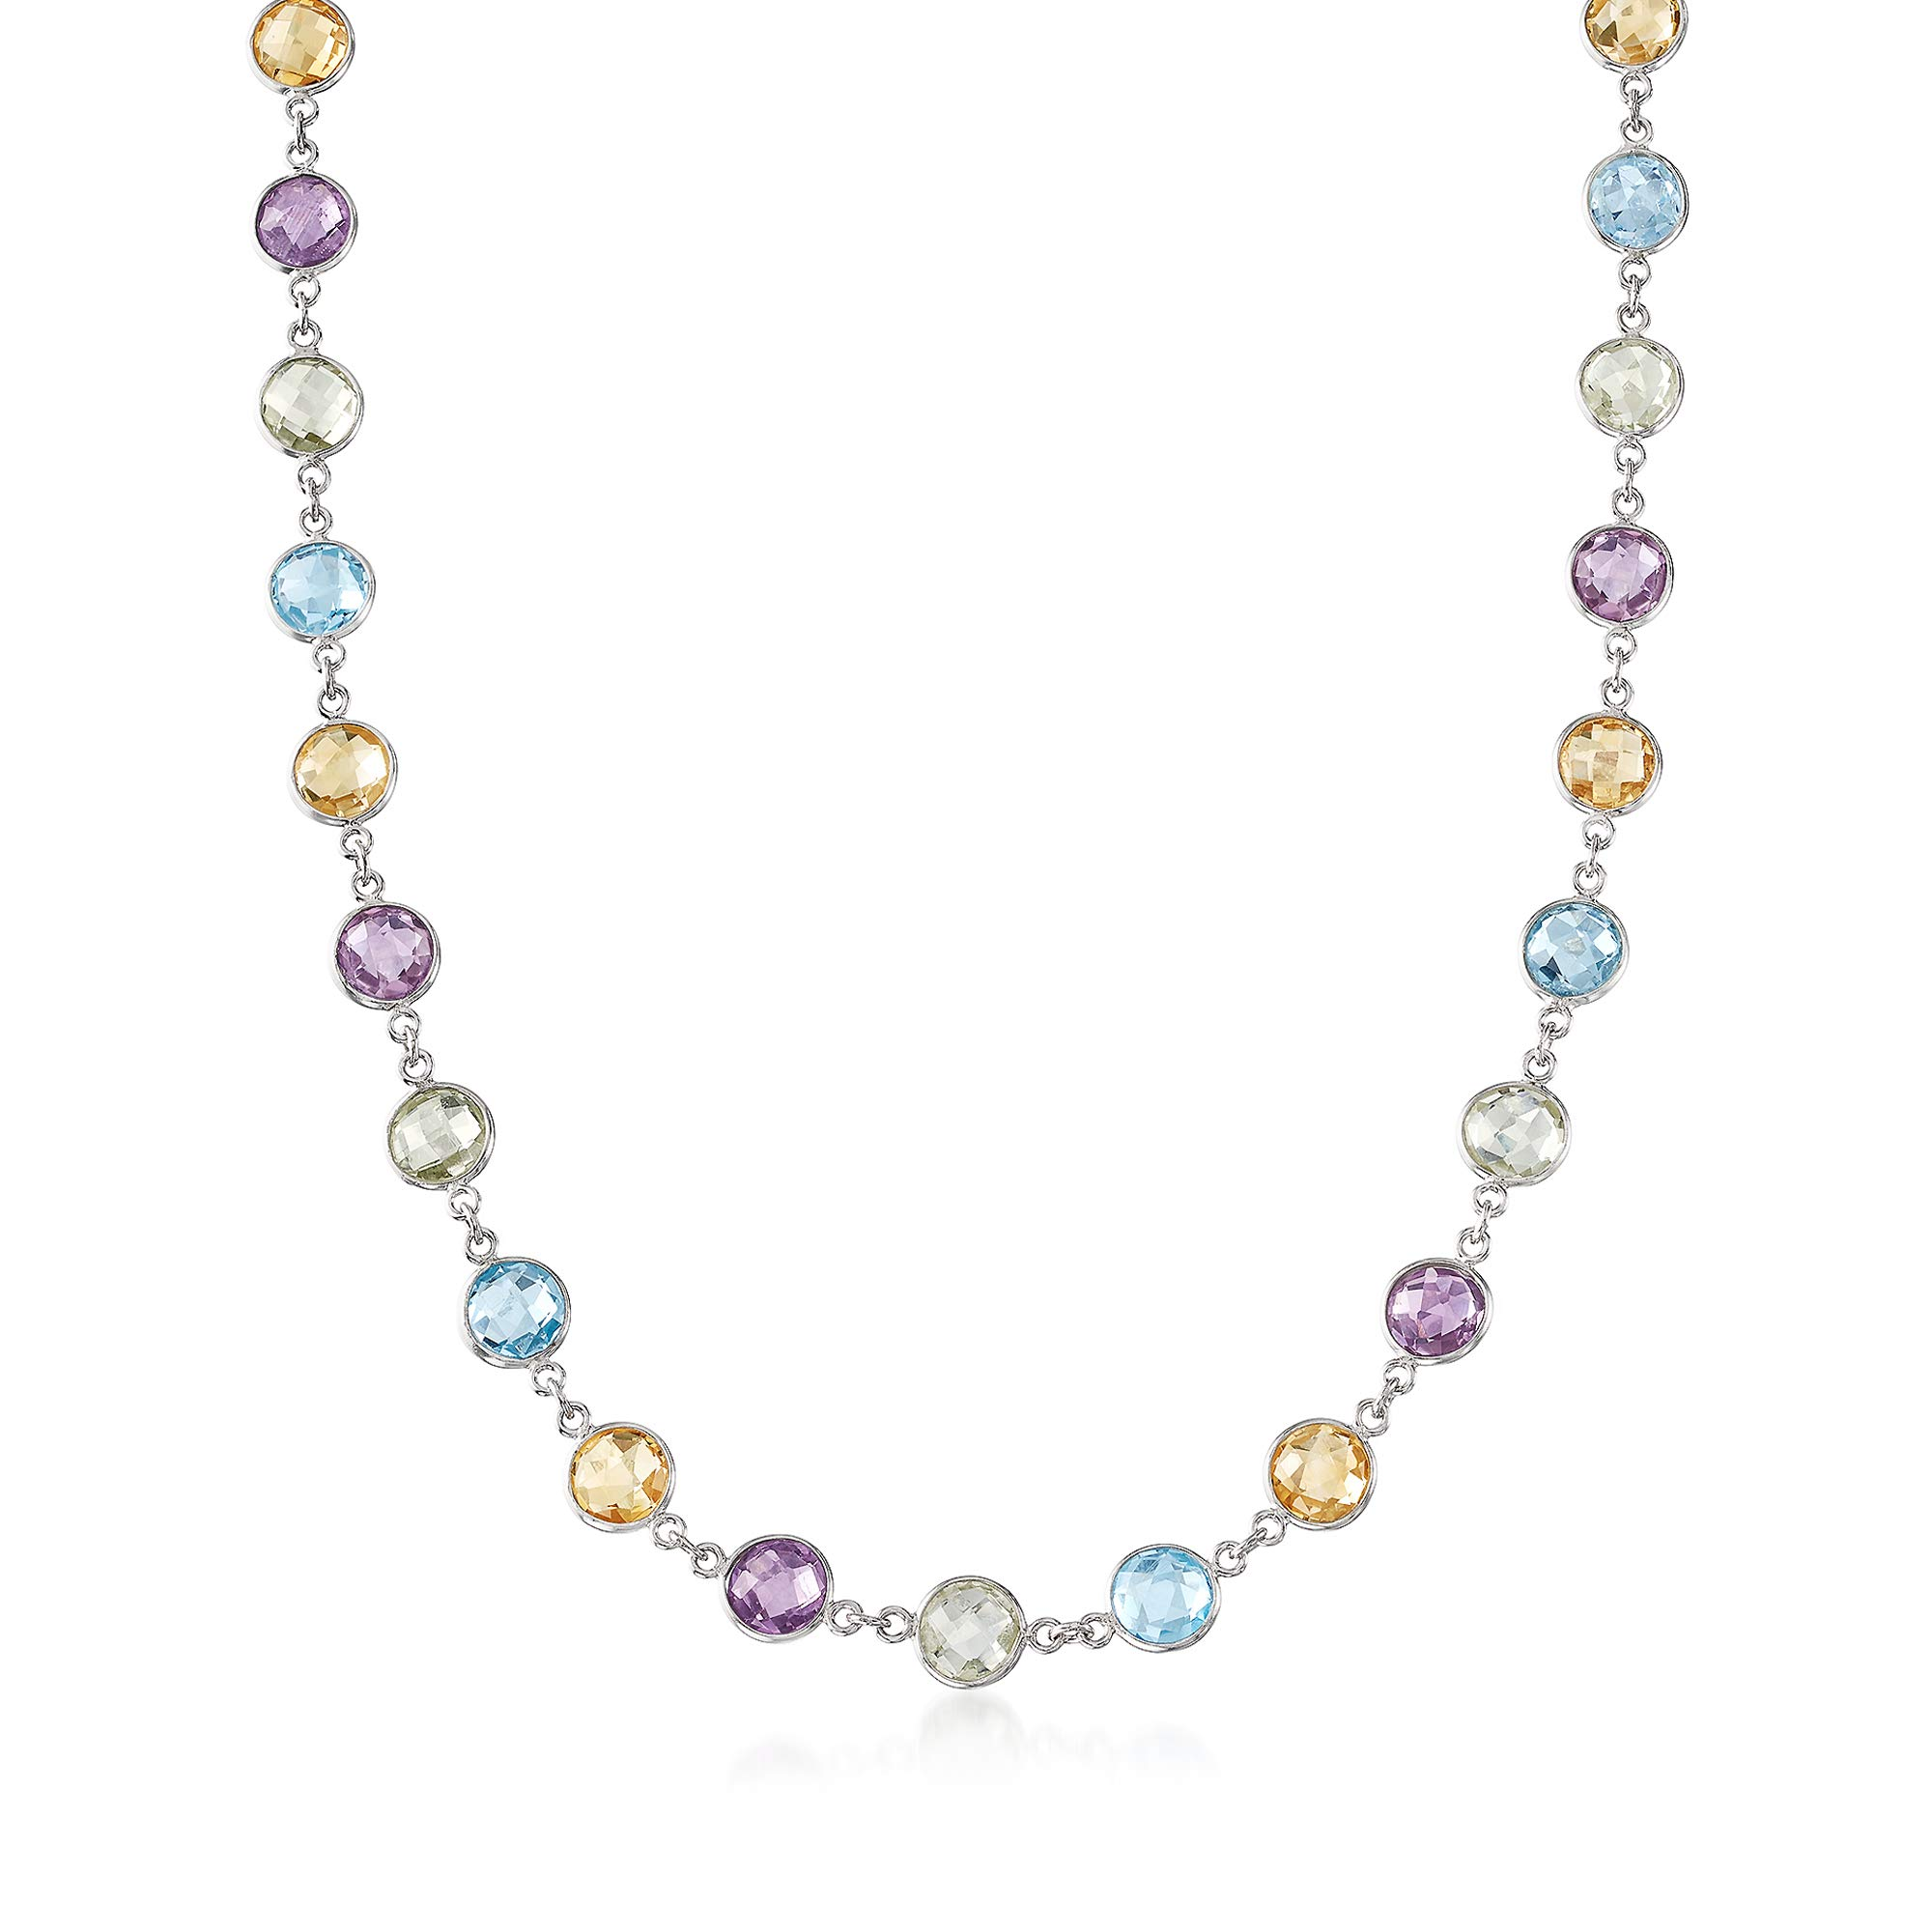 Ross-Simons 48.00 ct. t.w. Multi-Stone Necklace in Sterling Silver by Ross-Simons